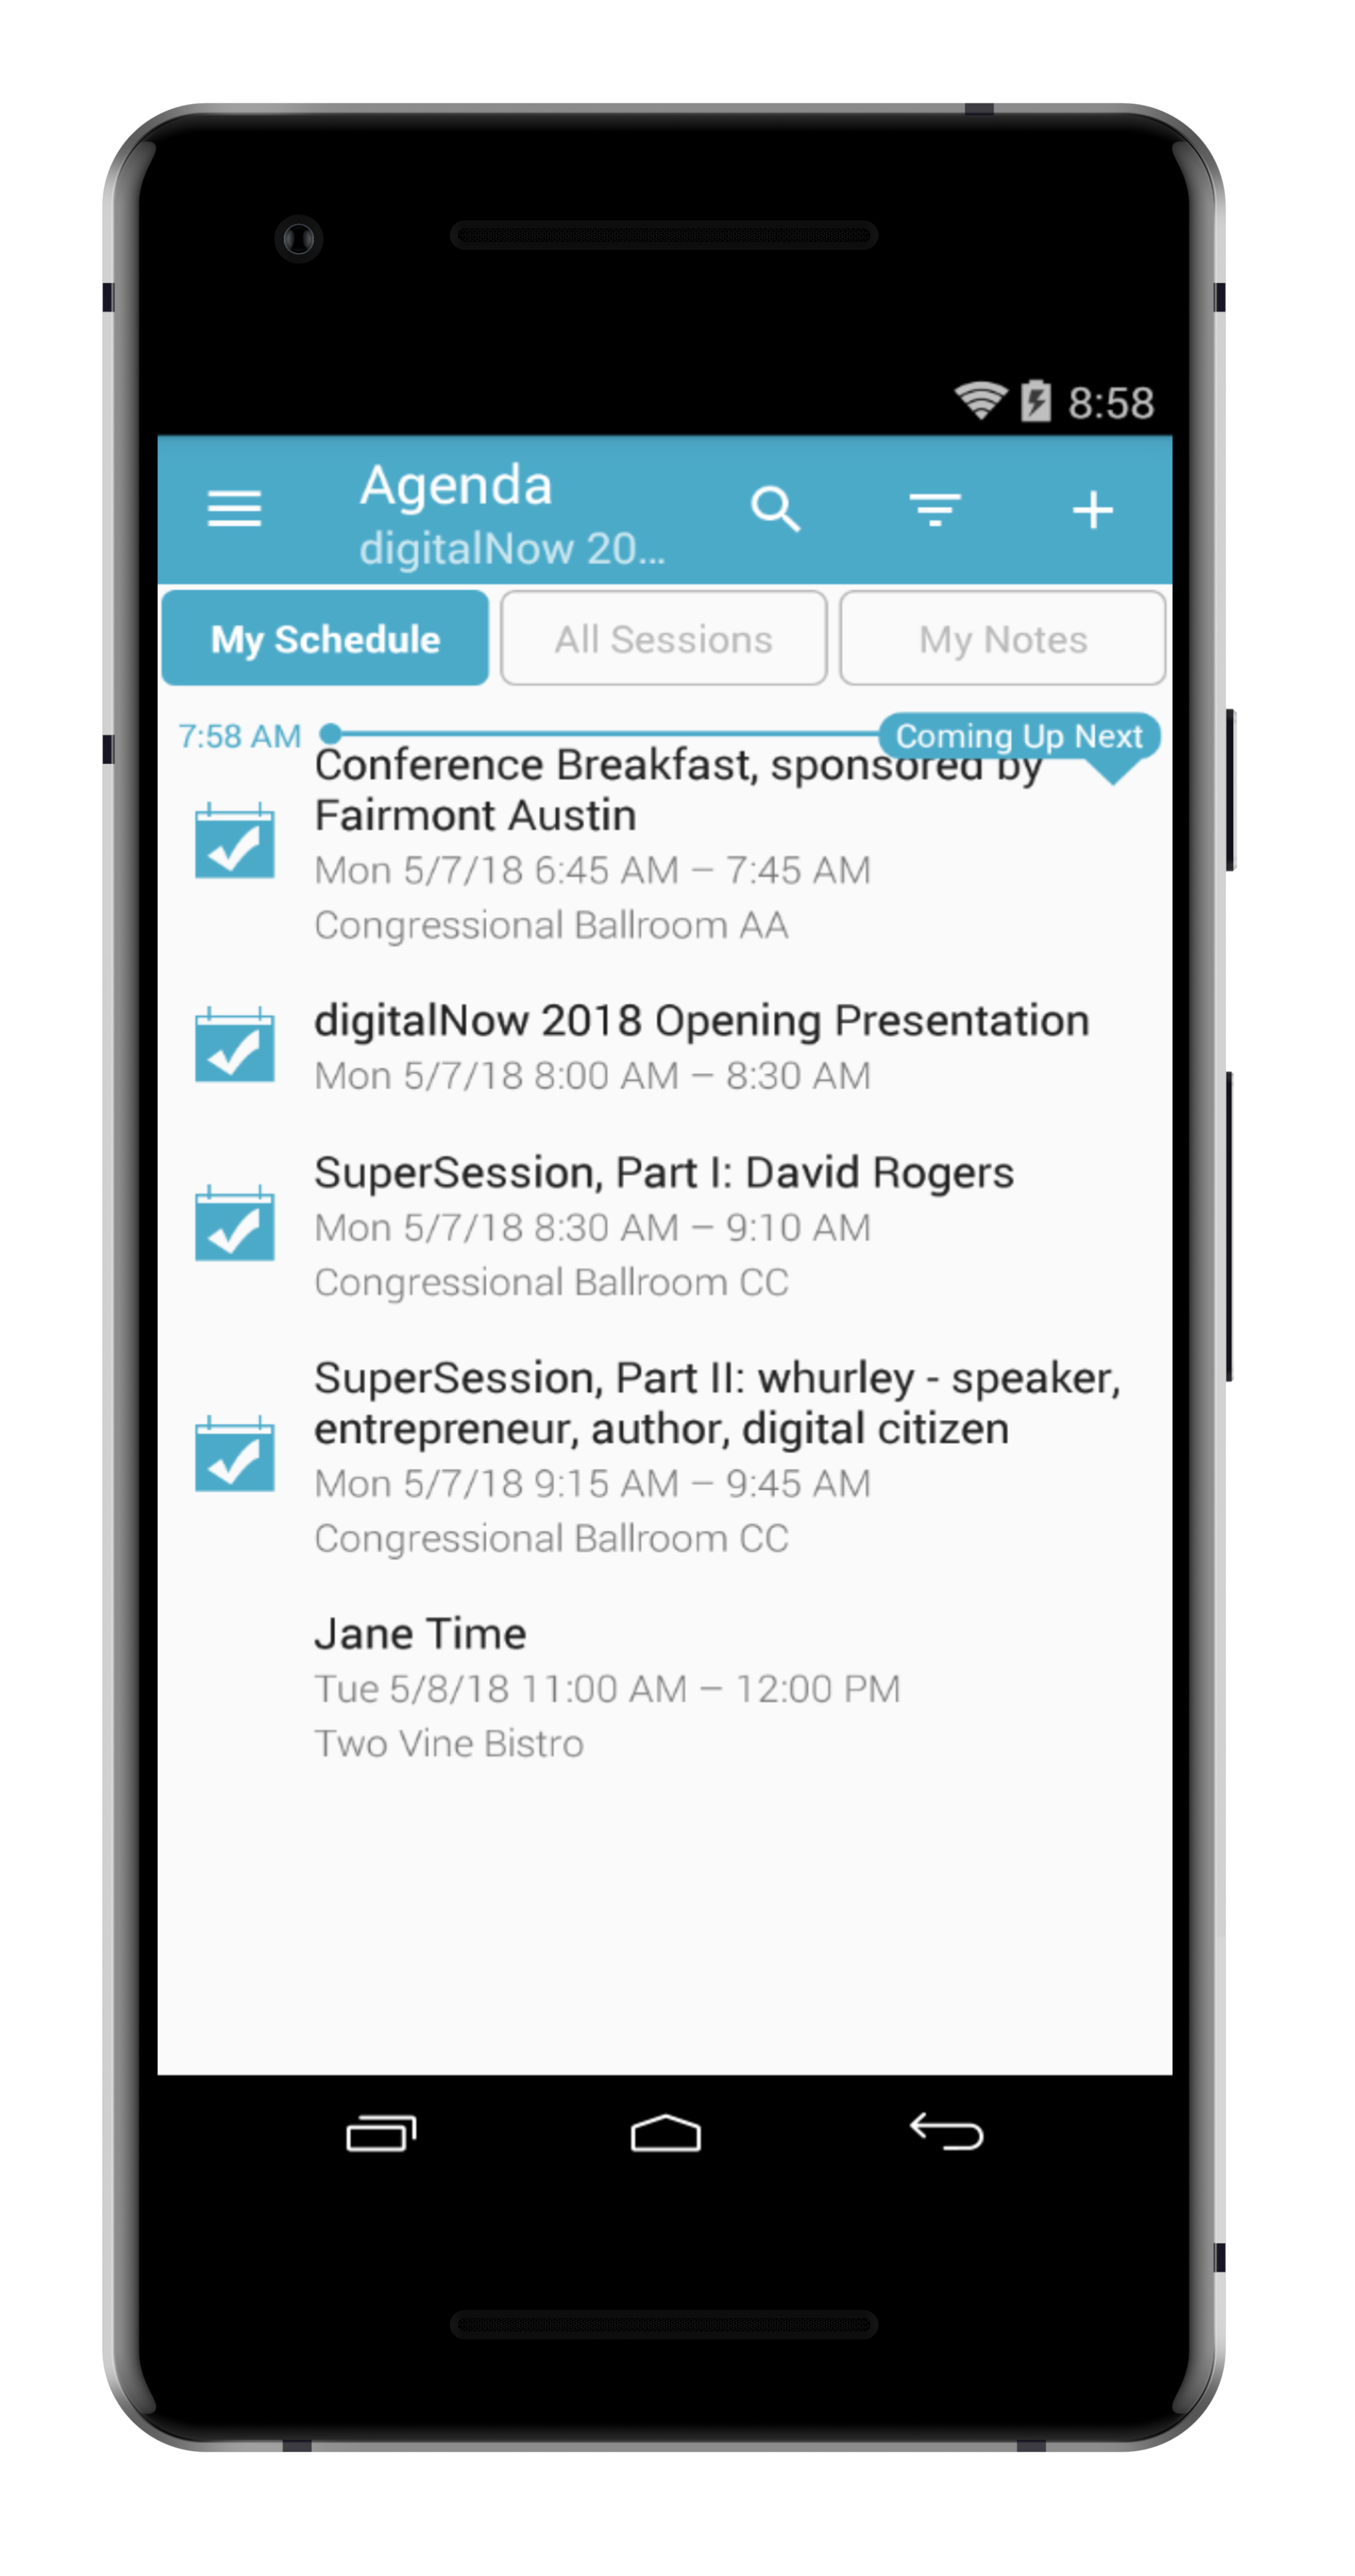 step 4. - FROM THE AGENDA CLICK THE 'MY SCHEDULE' TAB. YOU WILL SEE YOUR APPOINTMENT ON YOUR PERSONAL AGENDA NOW.